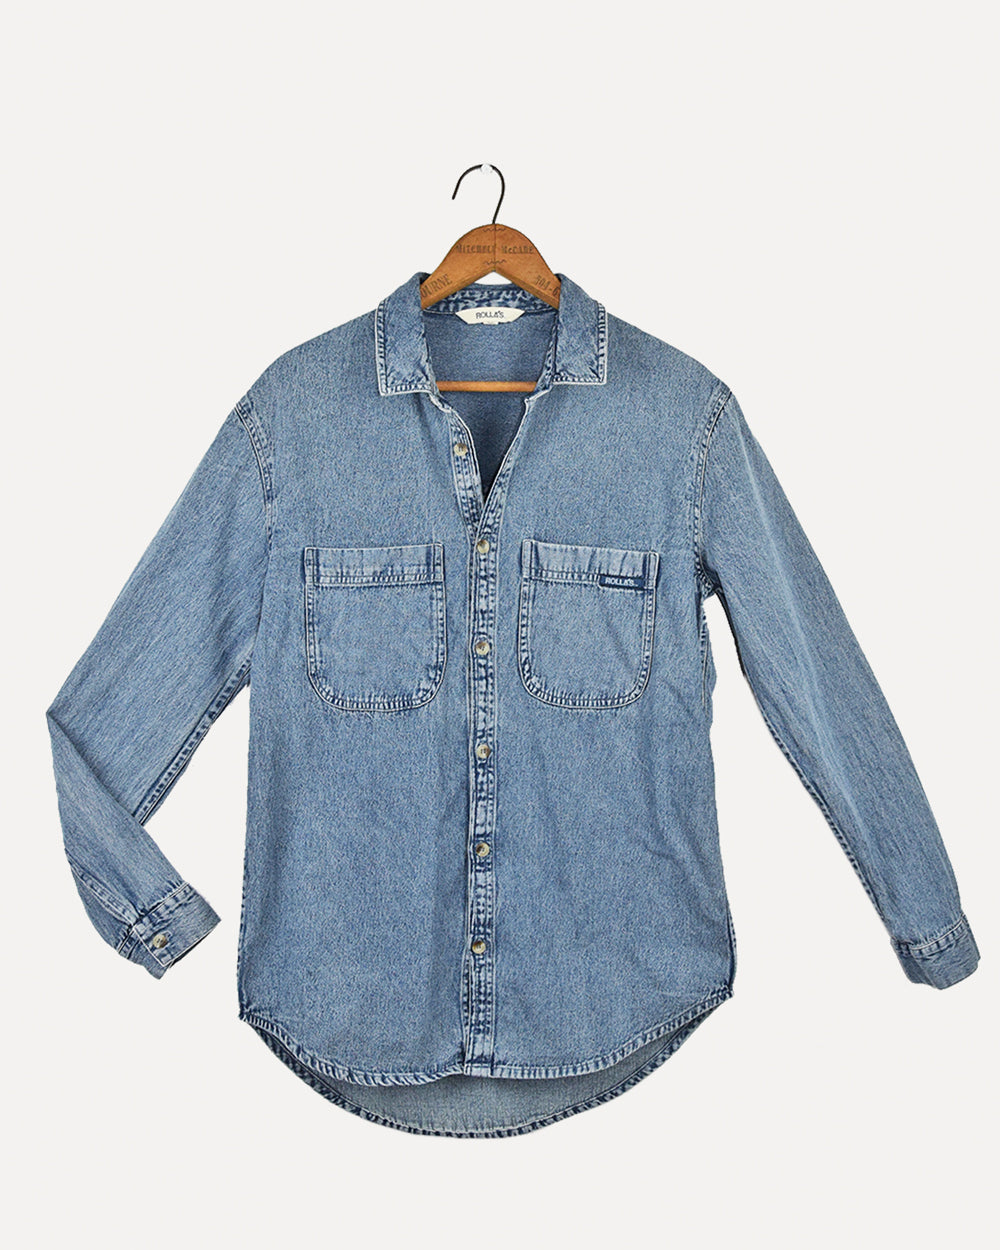 Rolla's Denim Shirt | 8-10